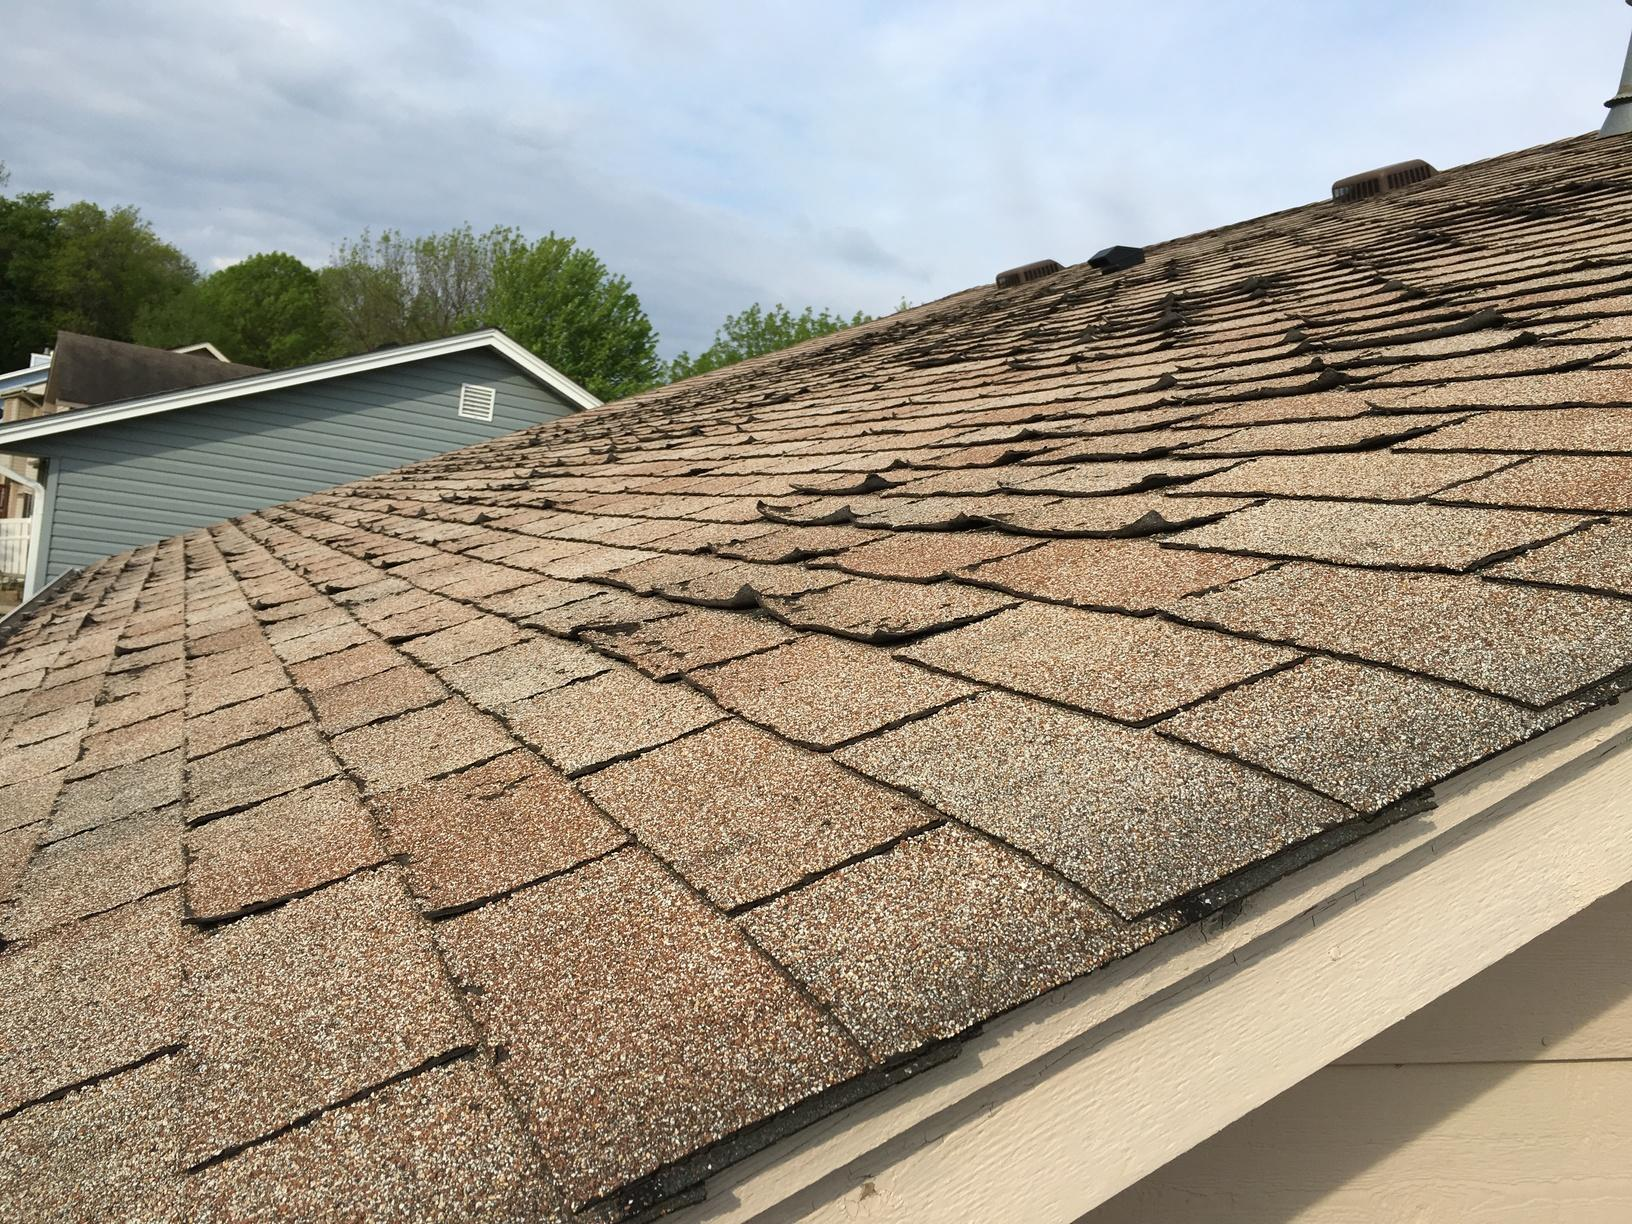 A before photo of the roof before replacement. Notice the cracking and curling shingles.